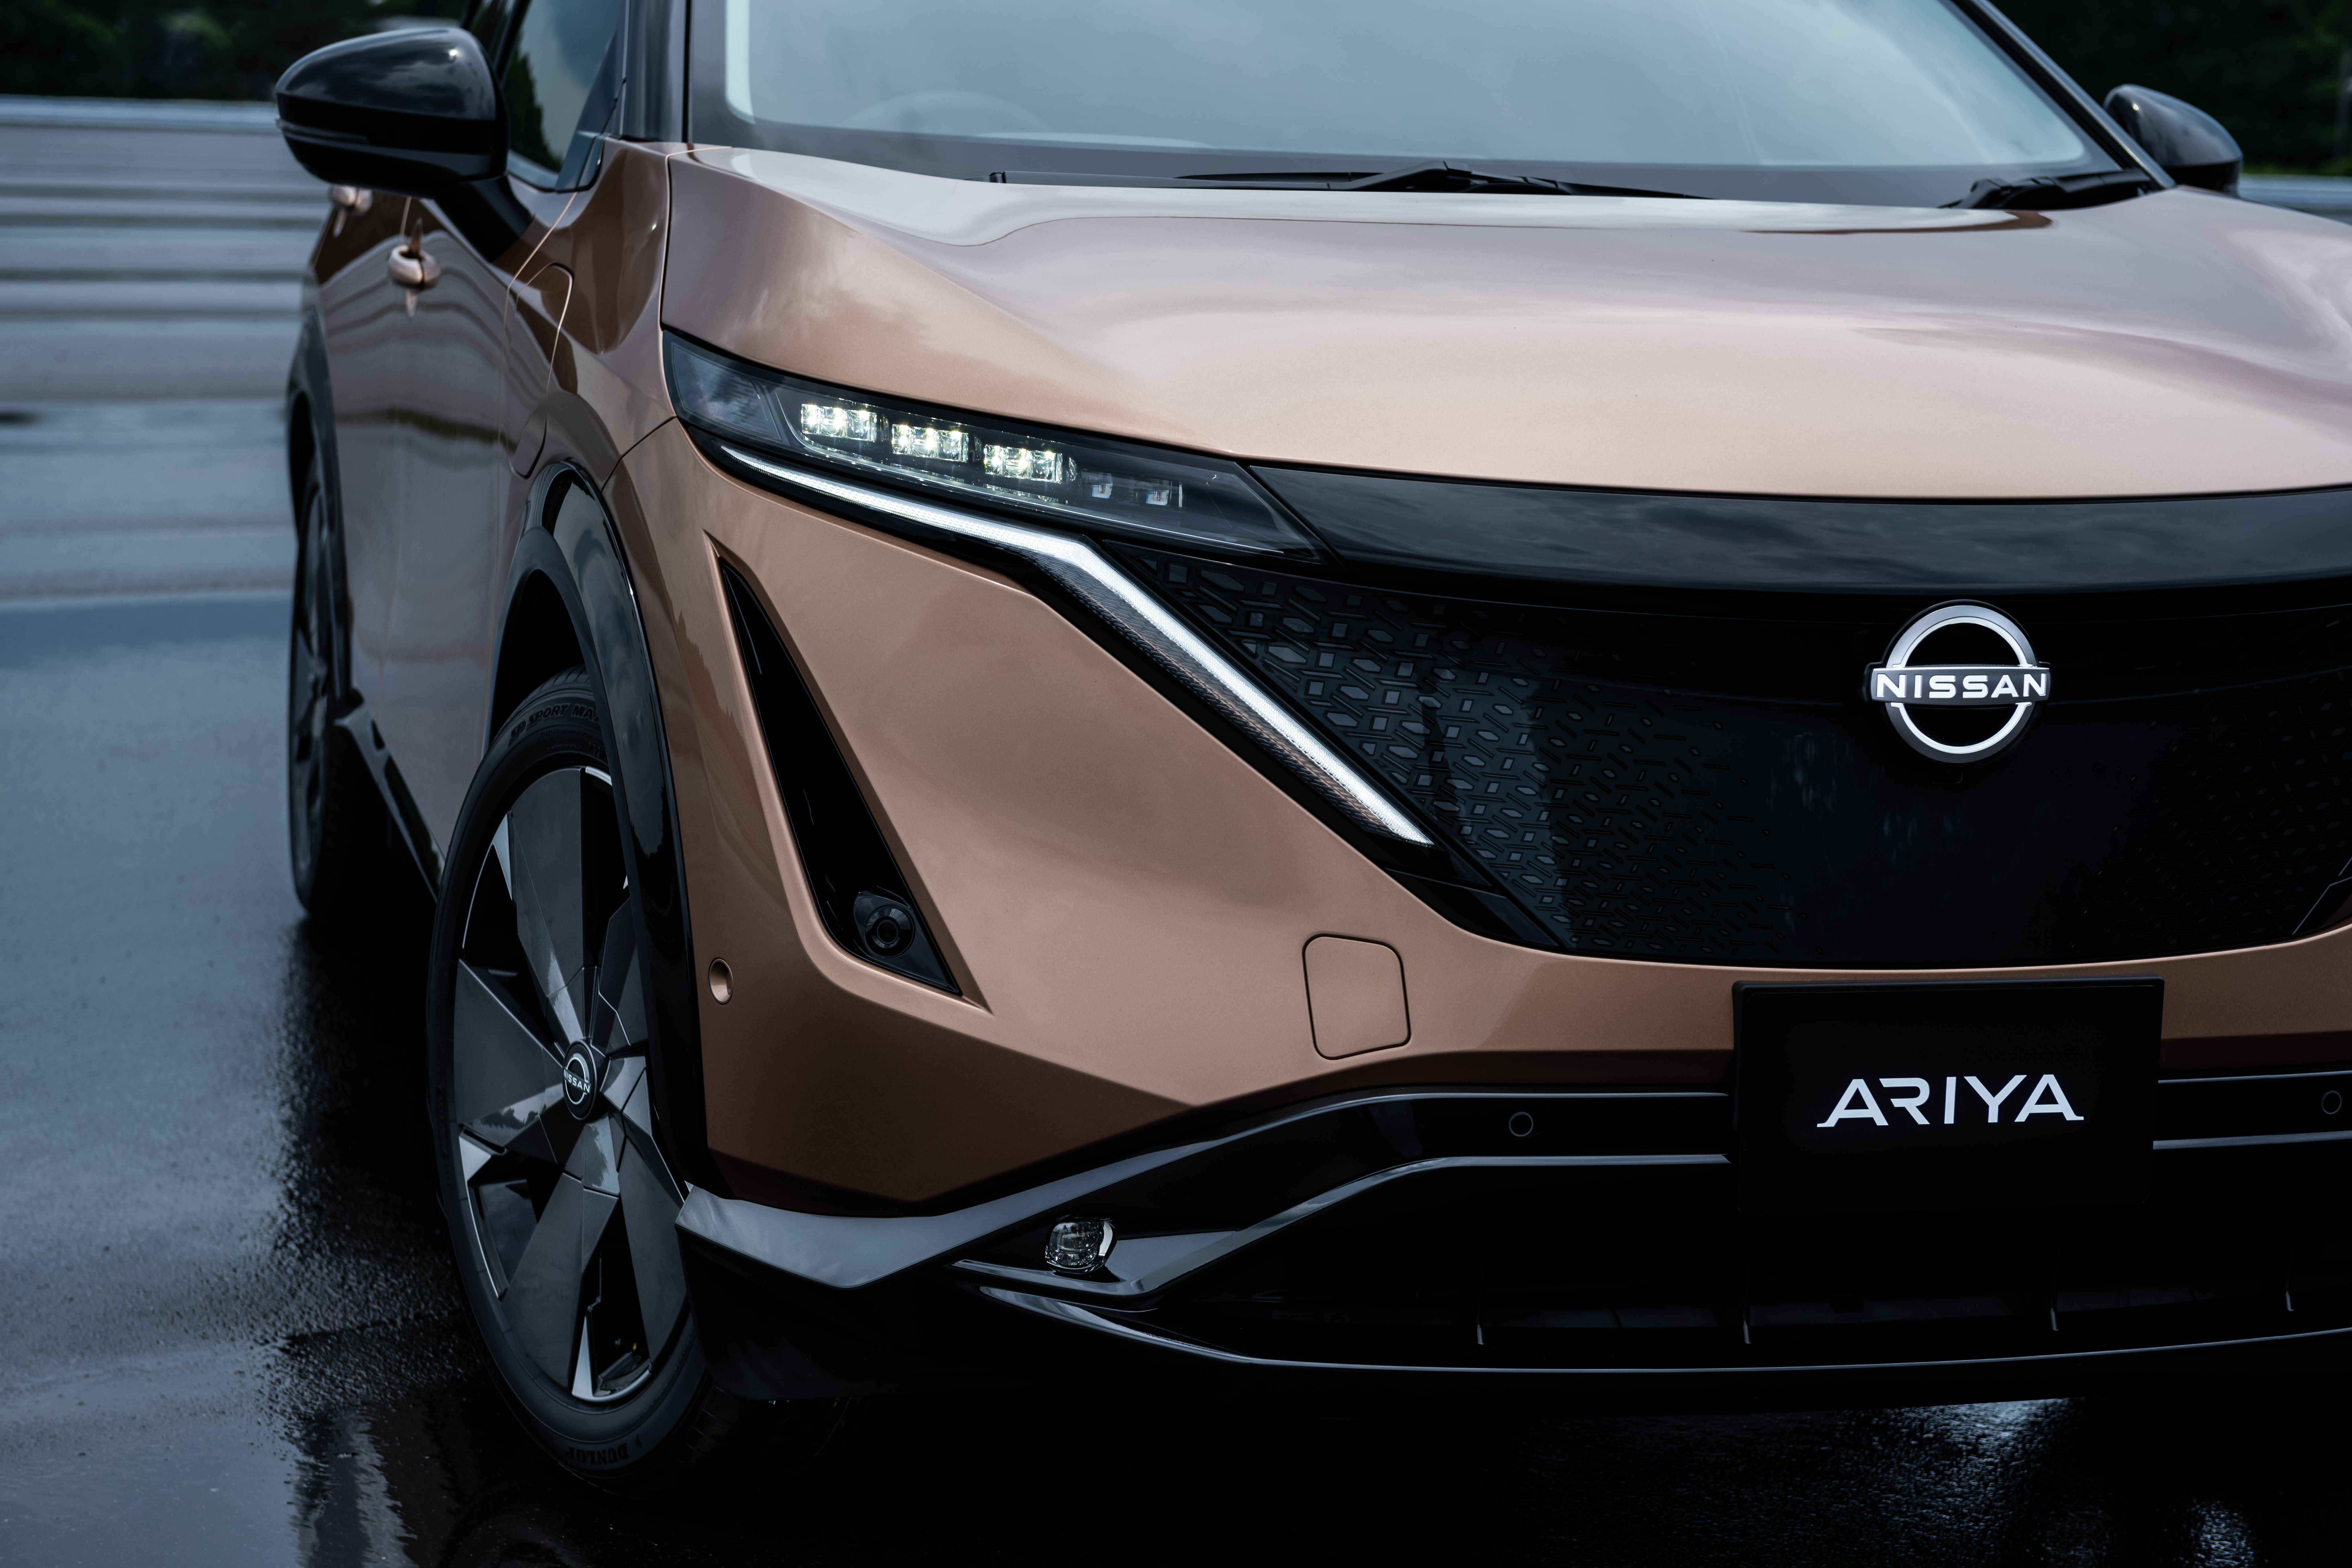 Nissan unveils all-electric Ariya crossover under turnaround plan